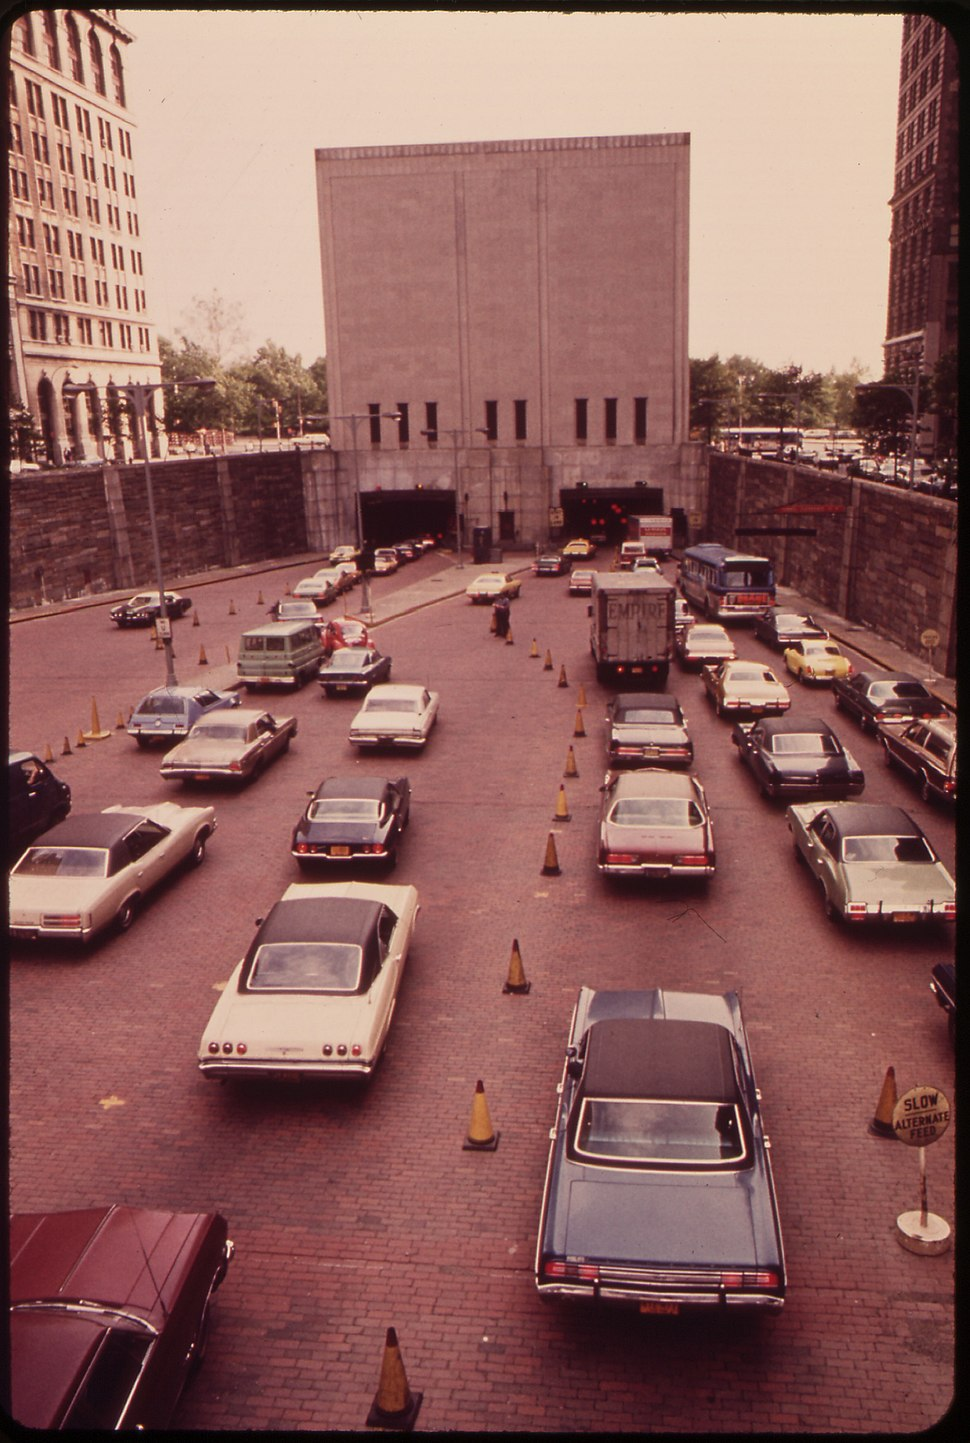 MANHATTAN ENTRANCE TO THE BROOKLYN-BATTERY TUNNEL - NARA - 549920